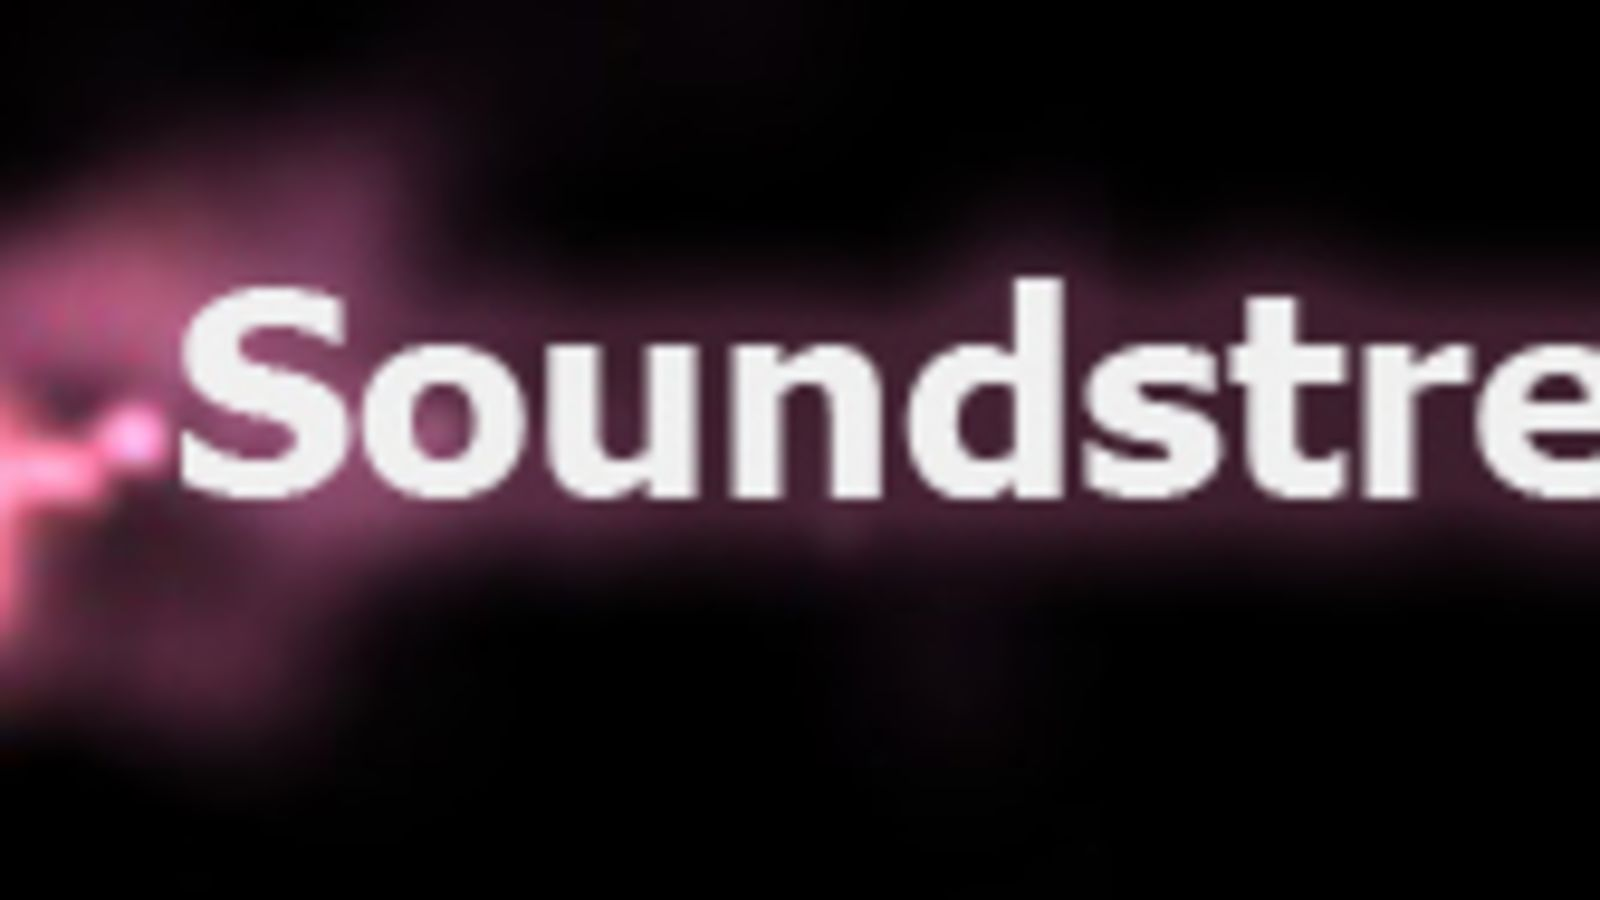 Download of the Day Soundstream screensaver Mac 1600x900